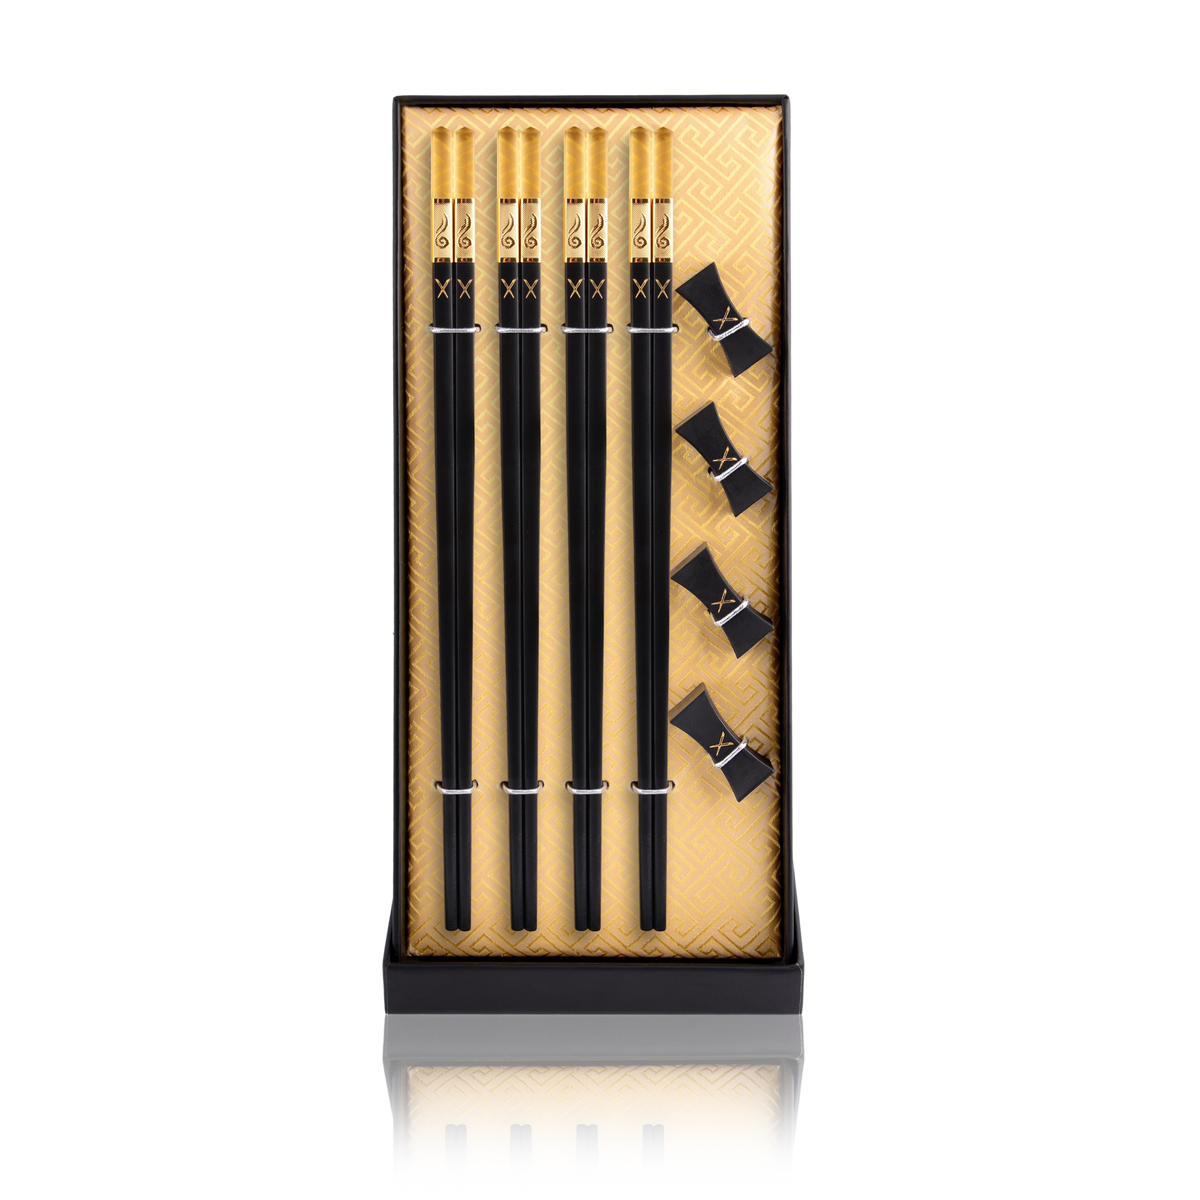 Luxury Chopsticks Set. Our chopsticks are luxurious, reusable and safe to use. Packed in a beautiful set, our designs are modern, traditional and elegant. Igneous - LuxSticks